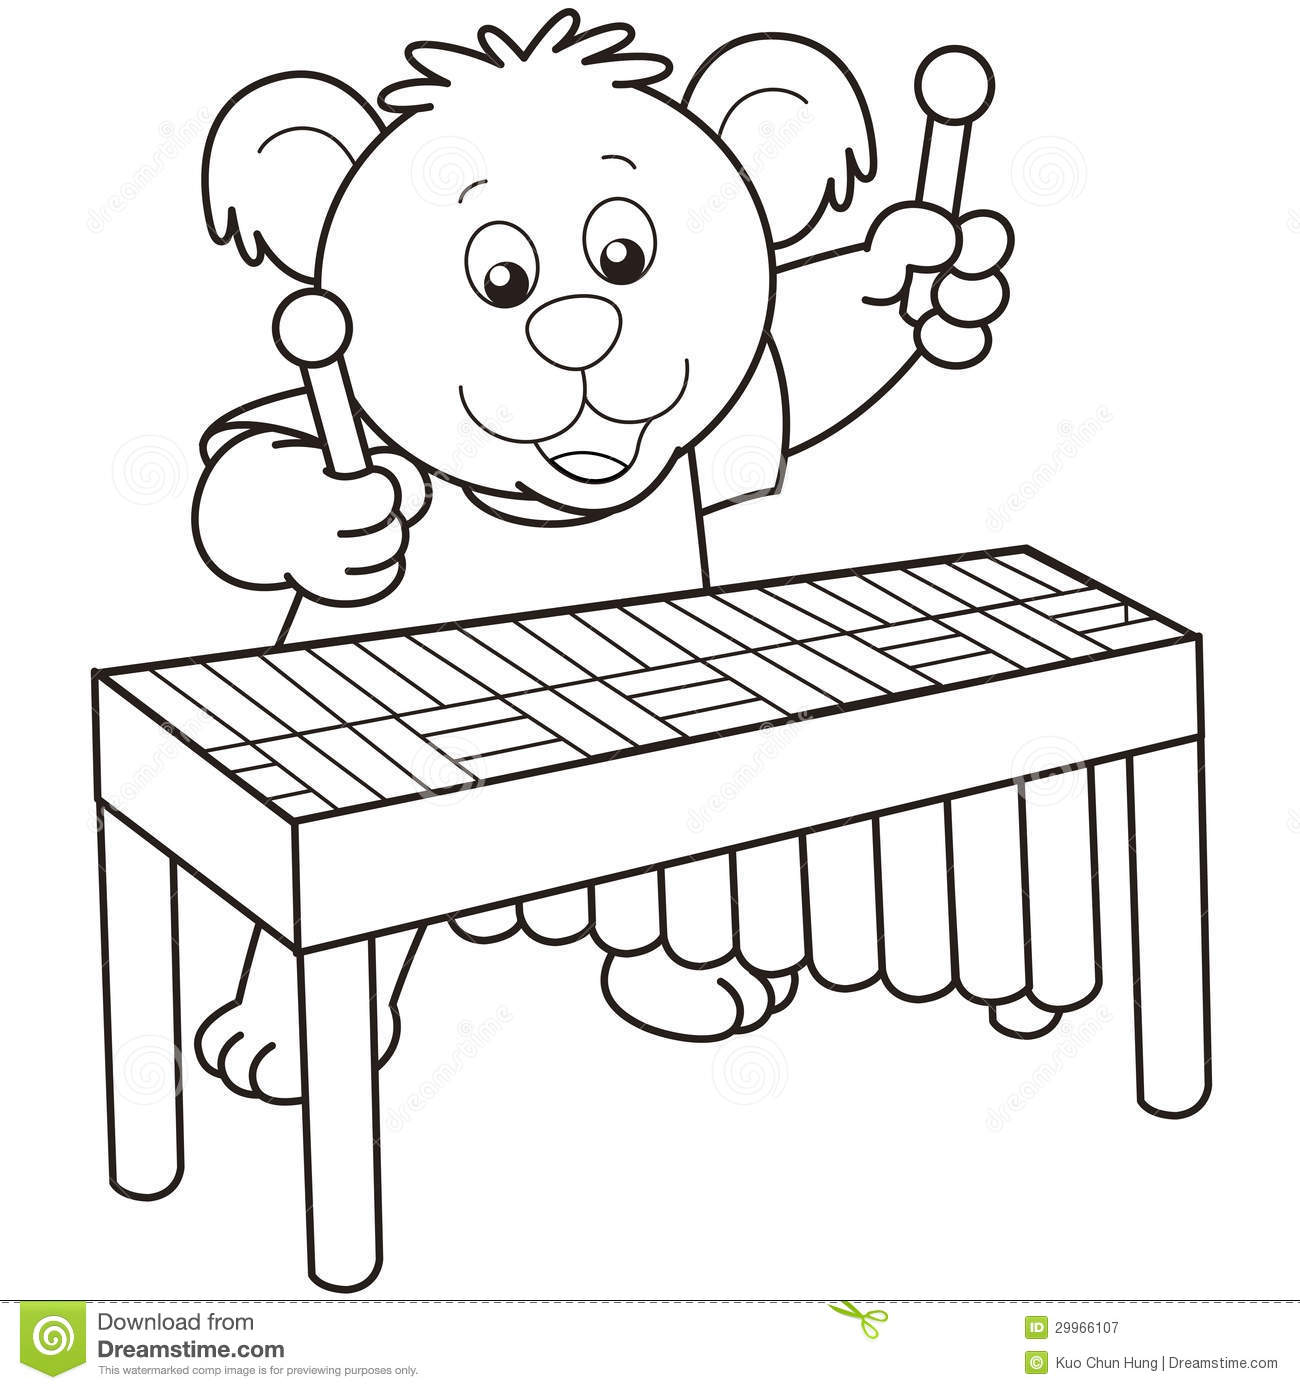 Line Drawing Of Xylophone : Cartoon bear playing a vibraphone royalty free stock